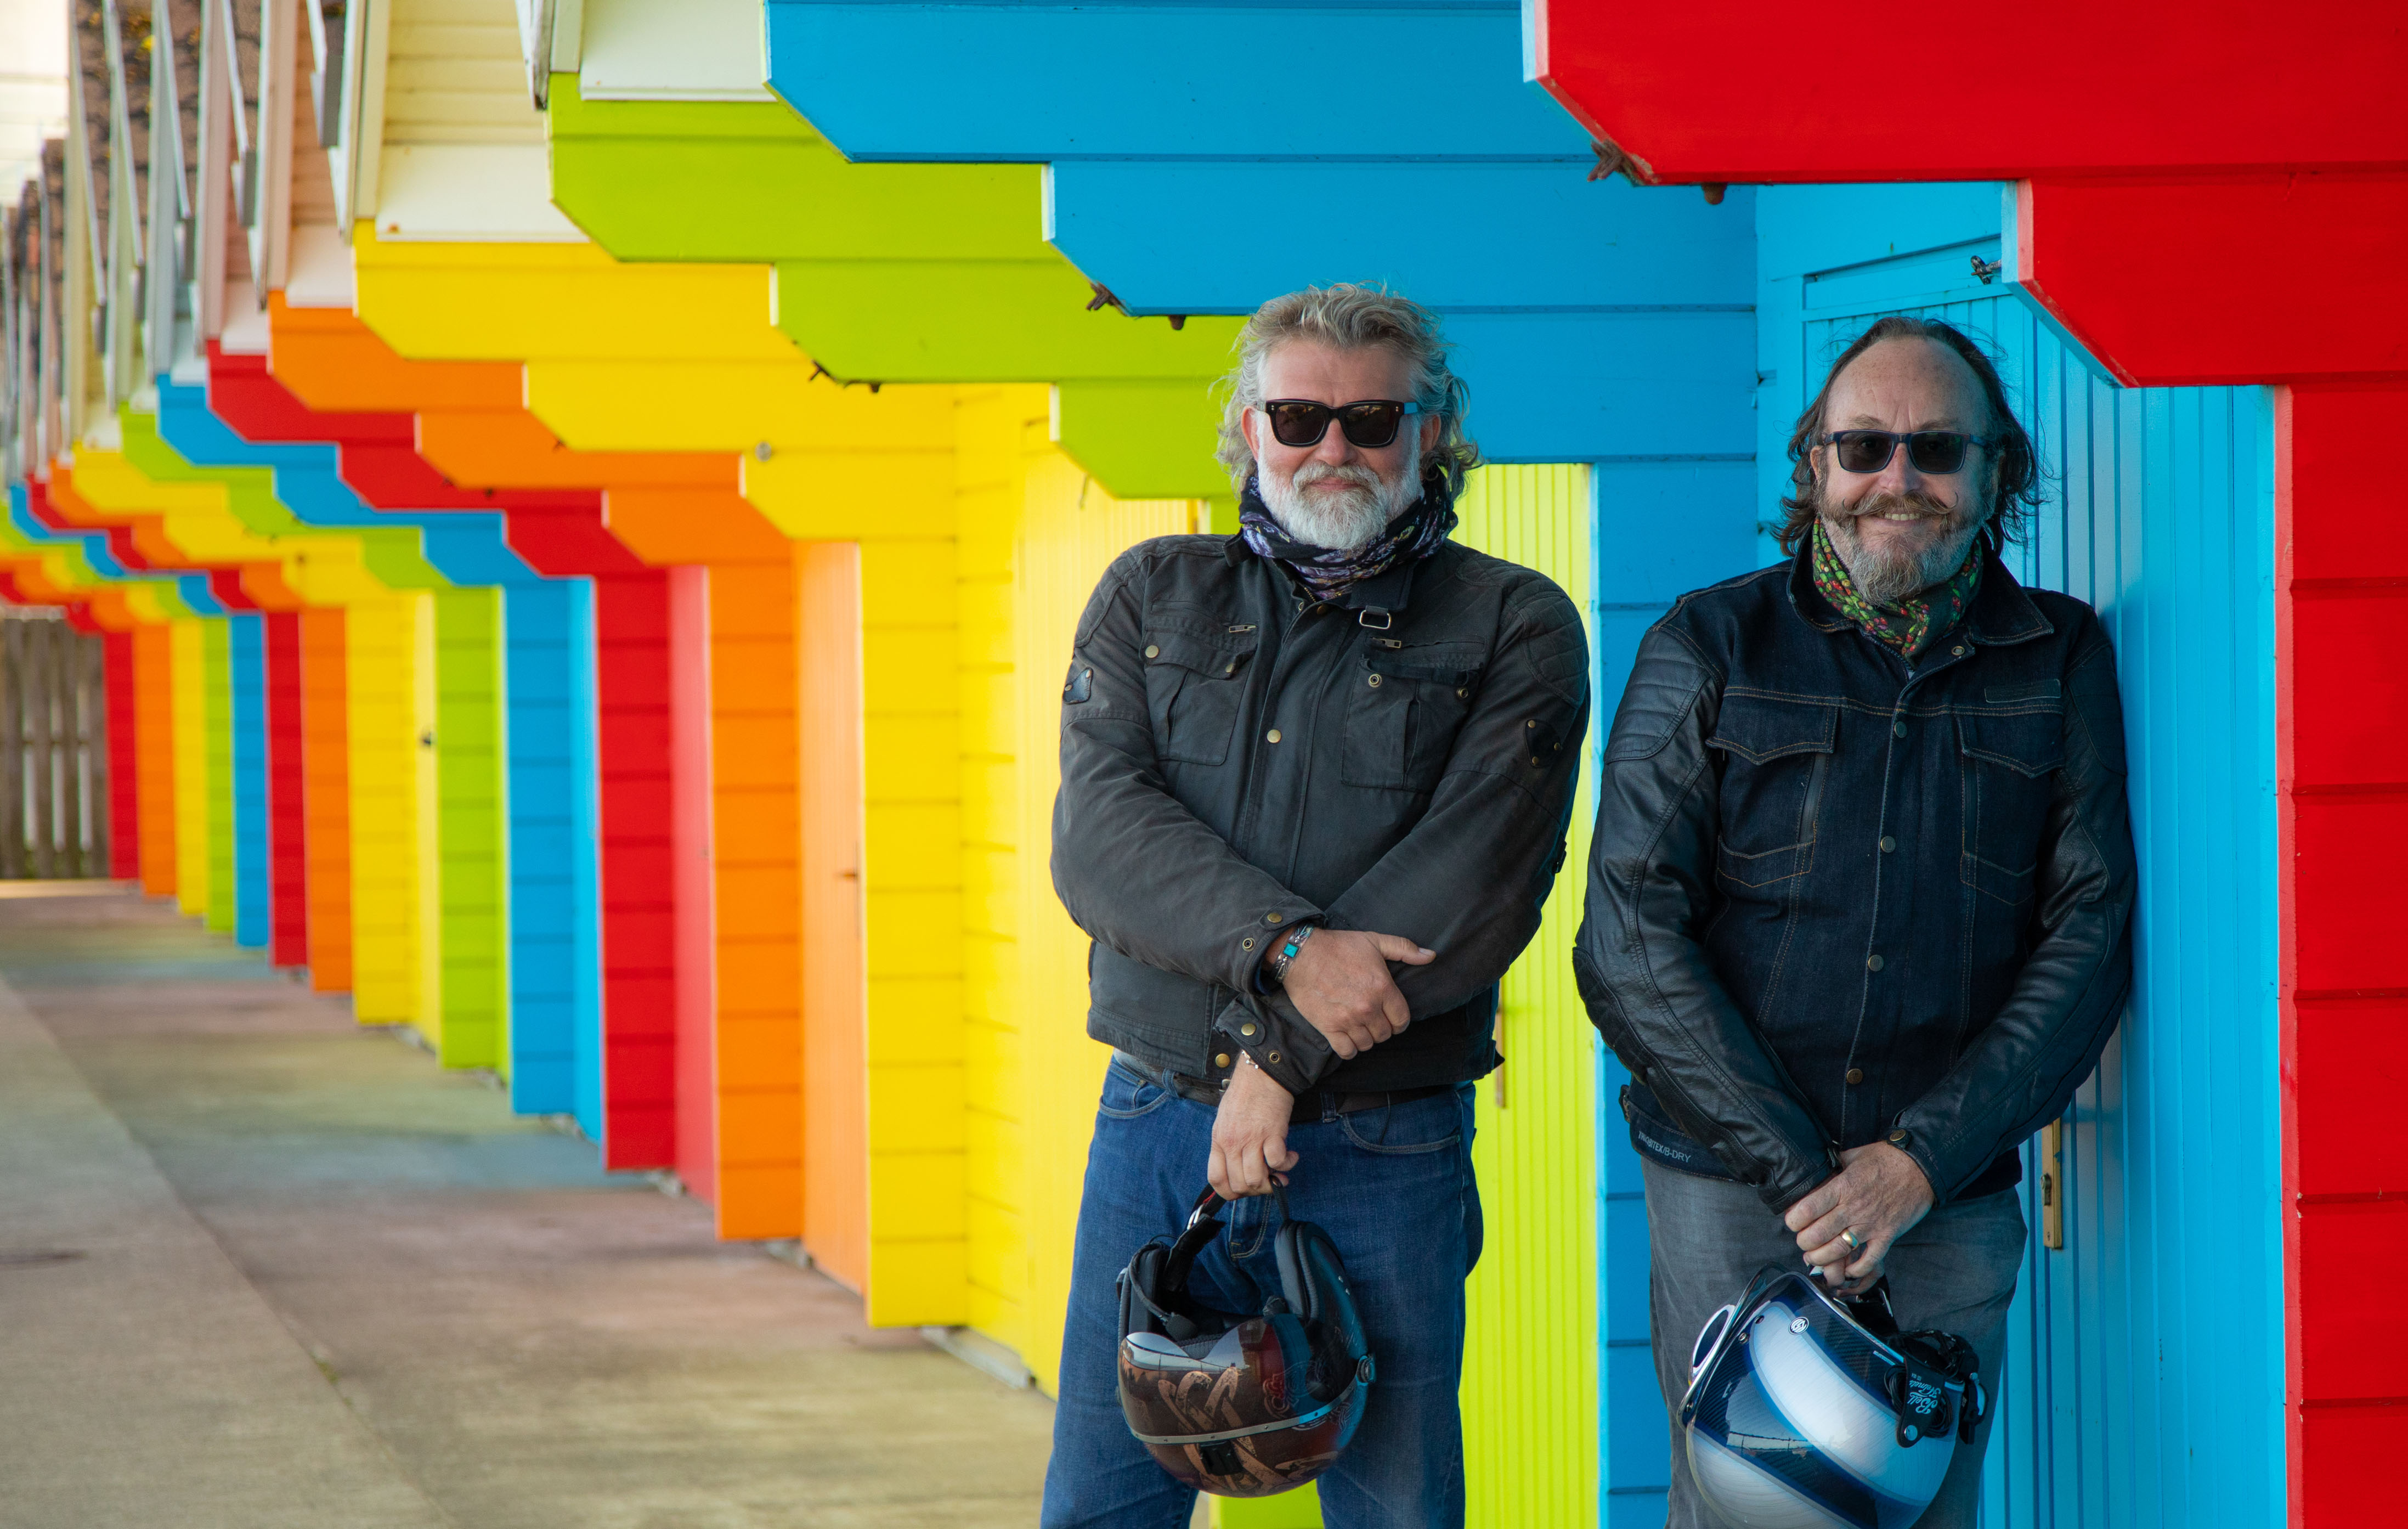 The Hairy Bikers found some beautiful spots on their travels.